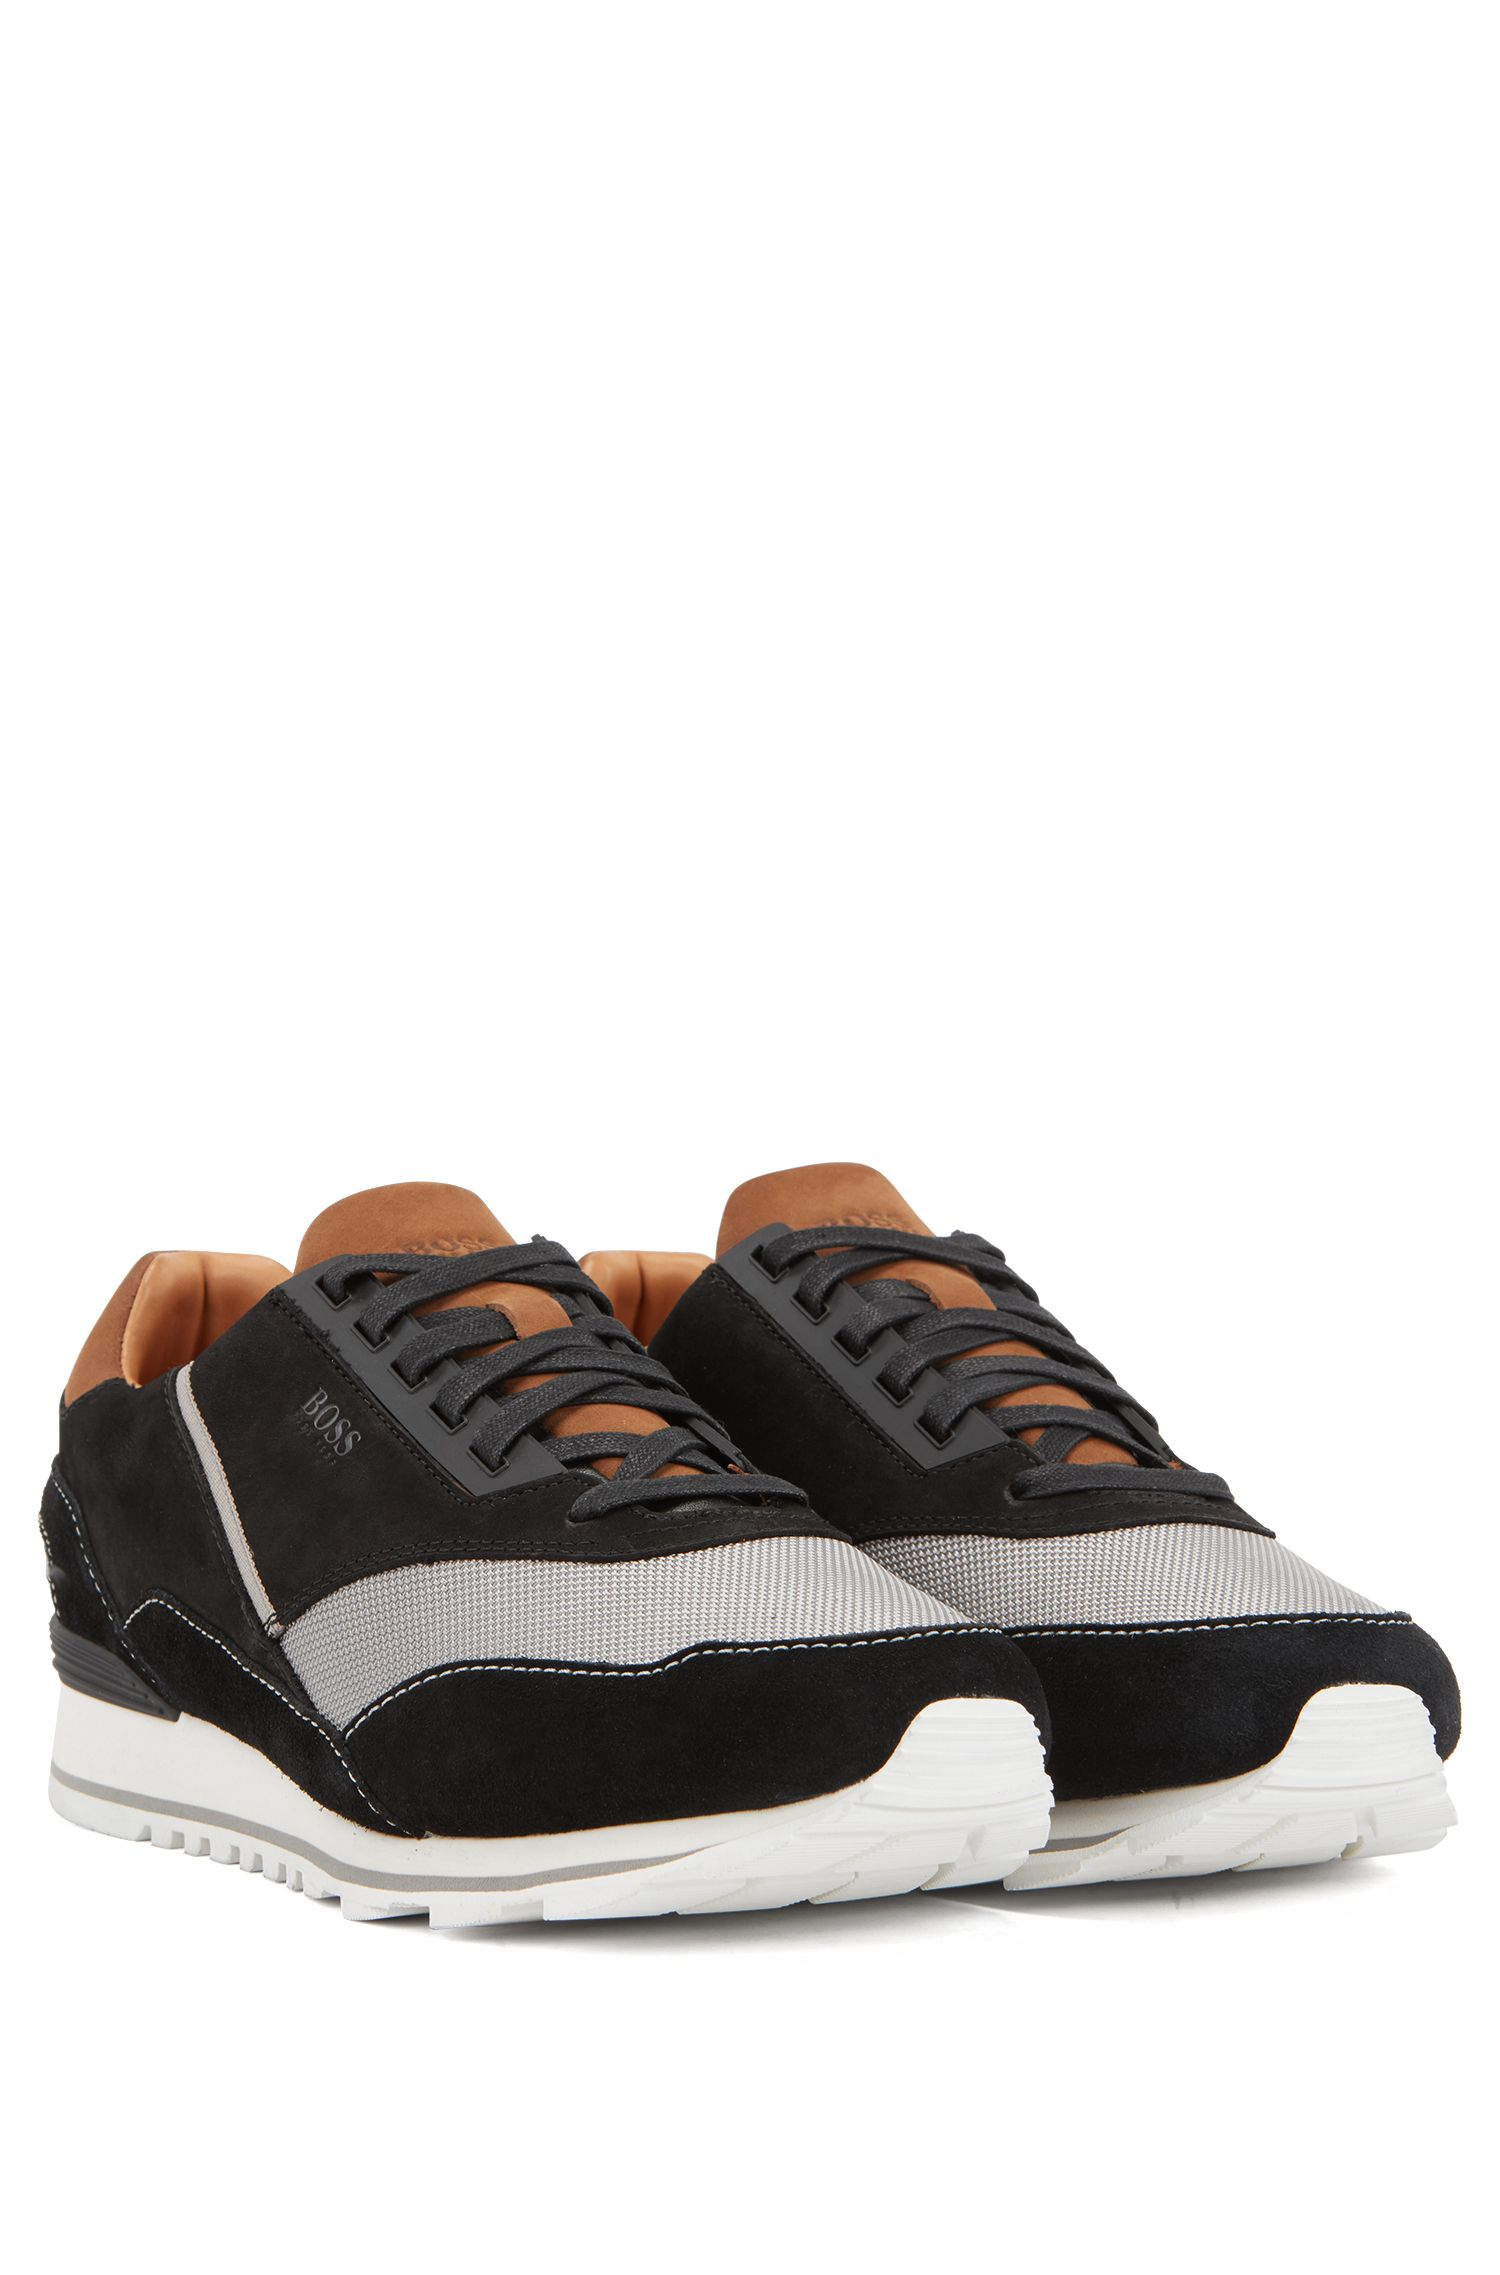 Low-top trainers in suede, leather and technical fabric, Black